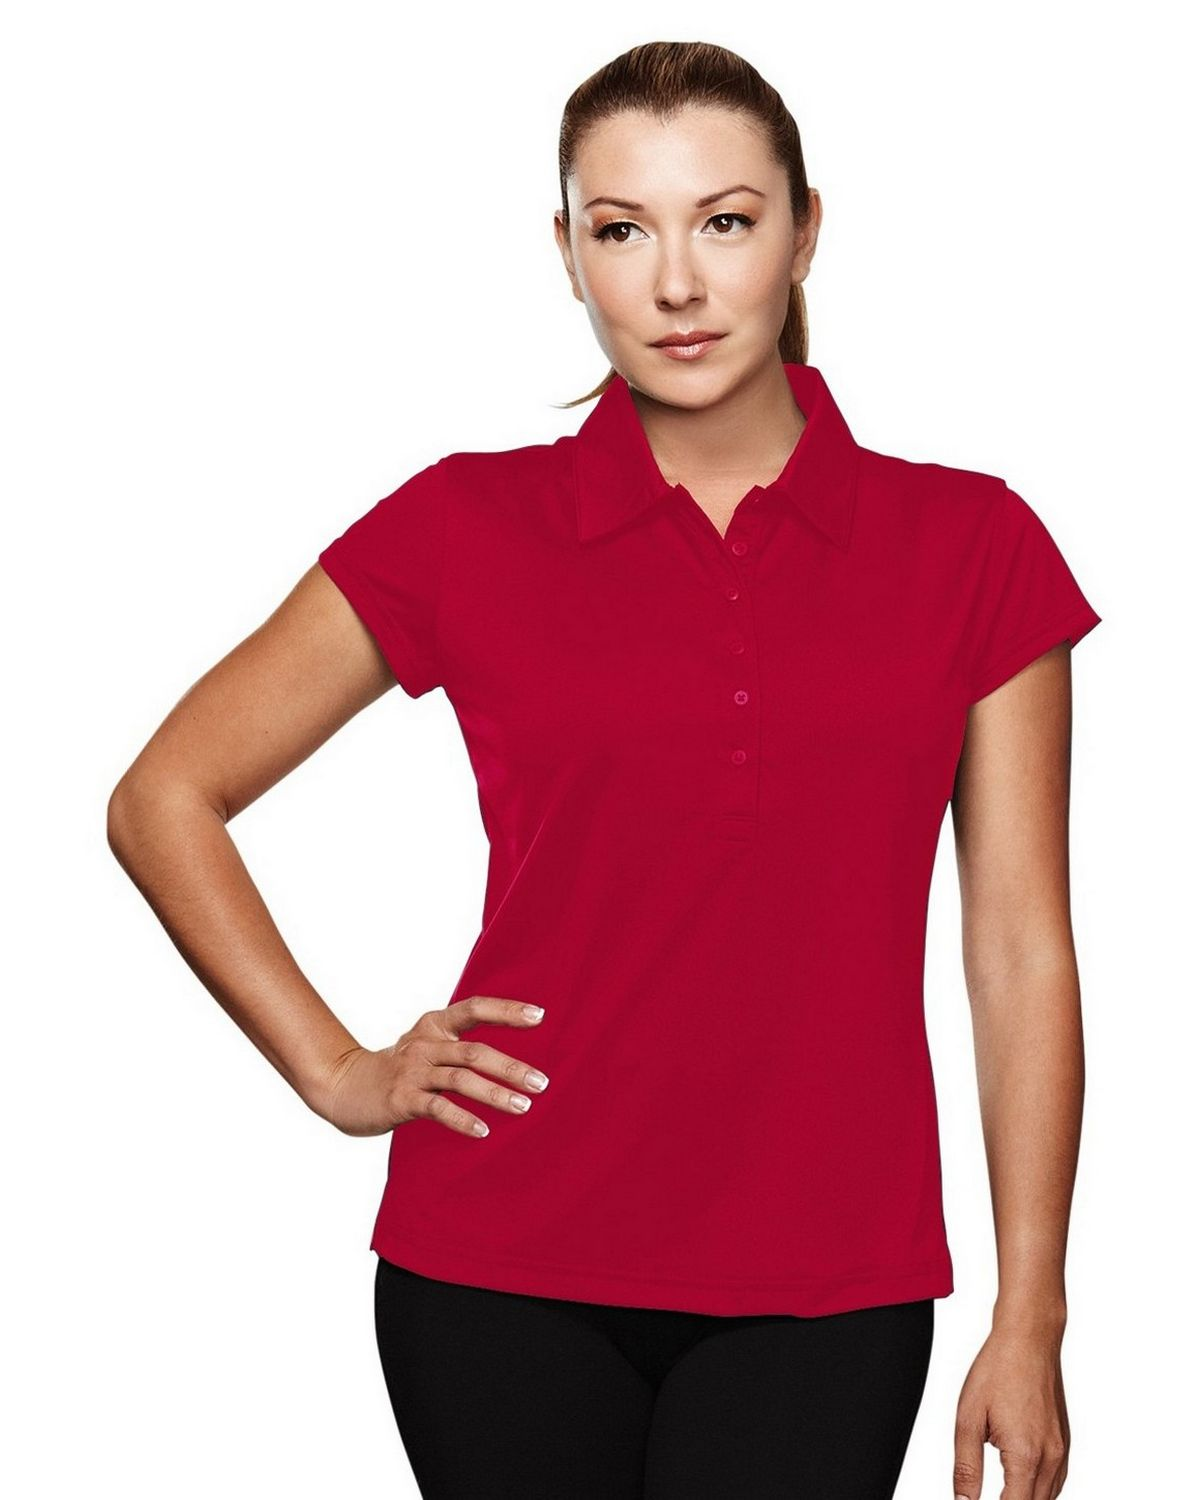 Tri-Mountain Performance 221 California Golf Shirt - Red - L 221